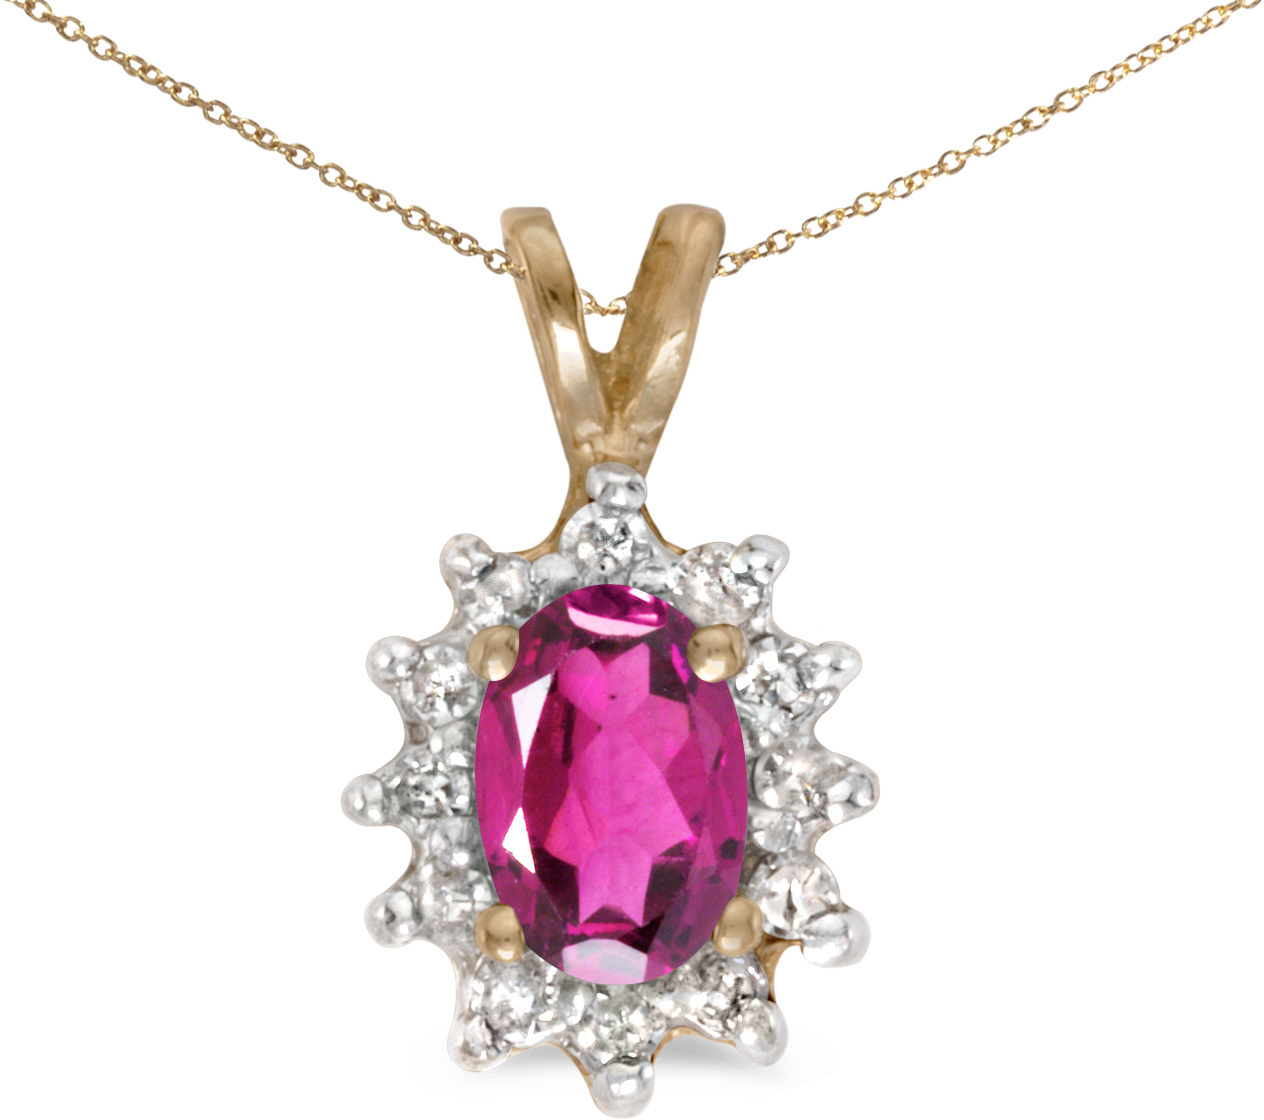 10k Yellow Gold Oval Pink Topaz And Diamond Pendant (Chain NOT included)